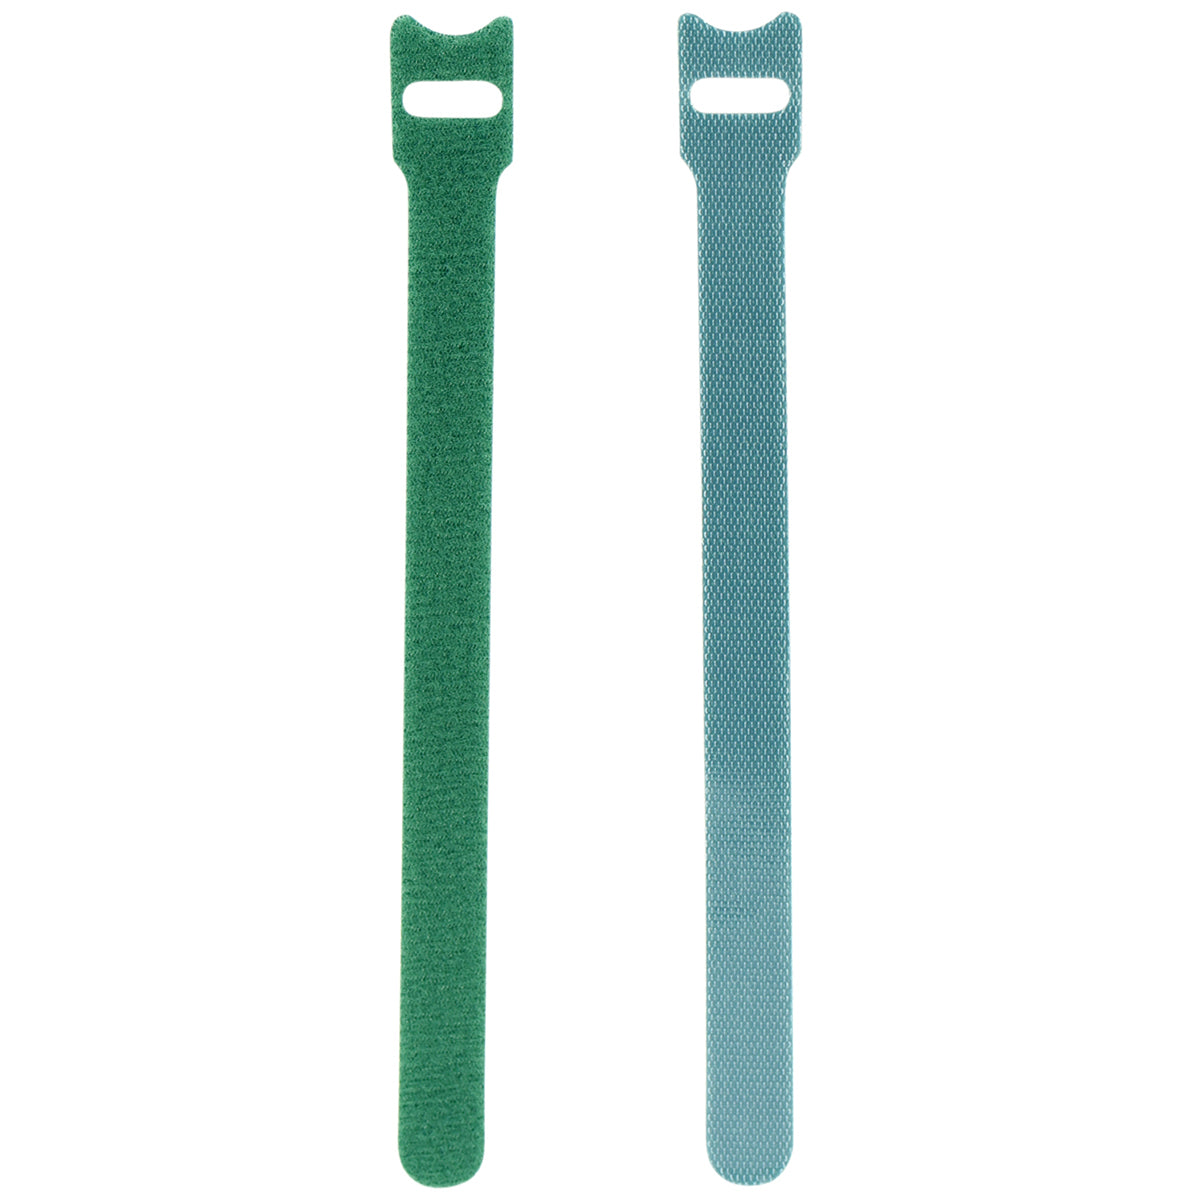 Displaying of two upright green nylon cable ties